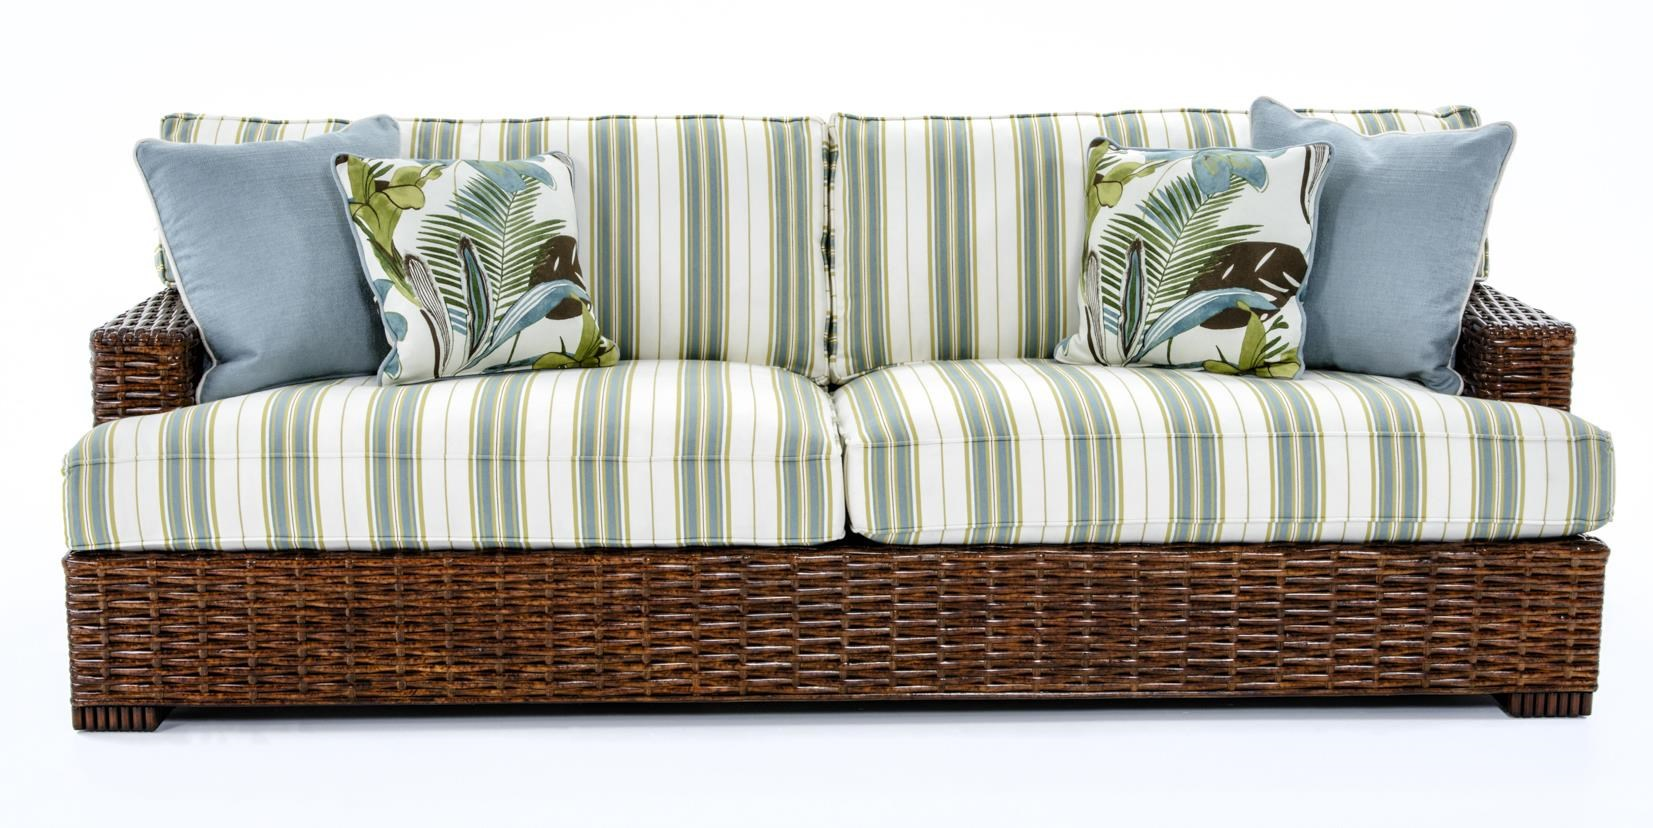 Ocean Club Salina Sofa by Tommy Bahama Home at Baer's Furniture